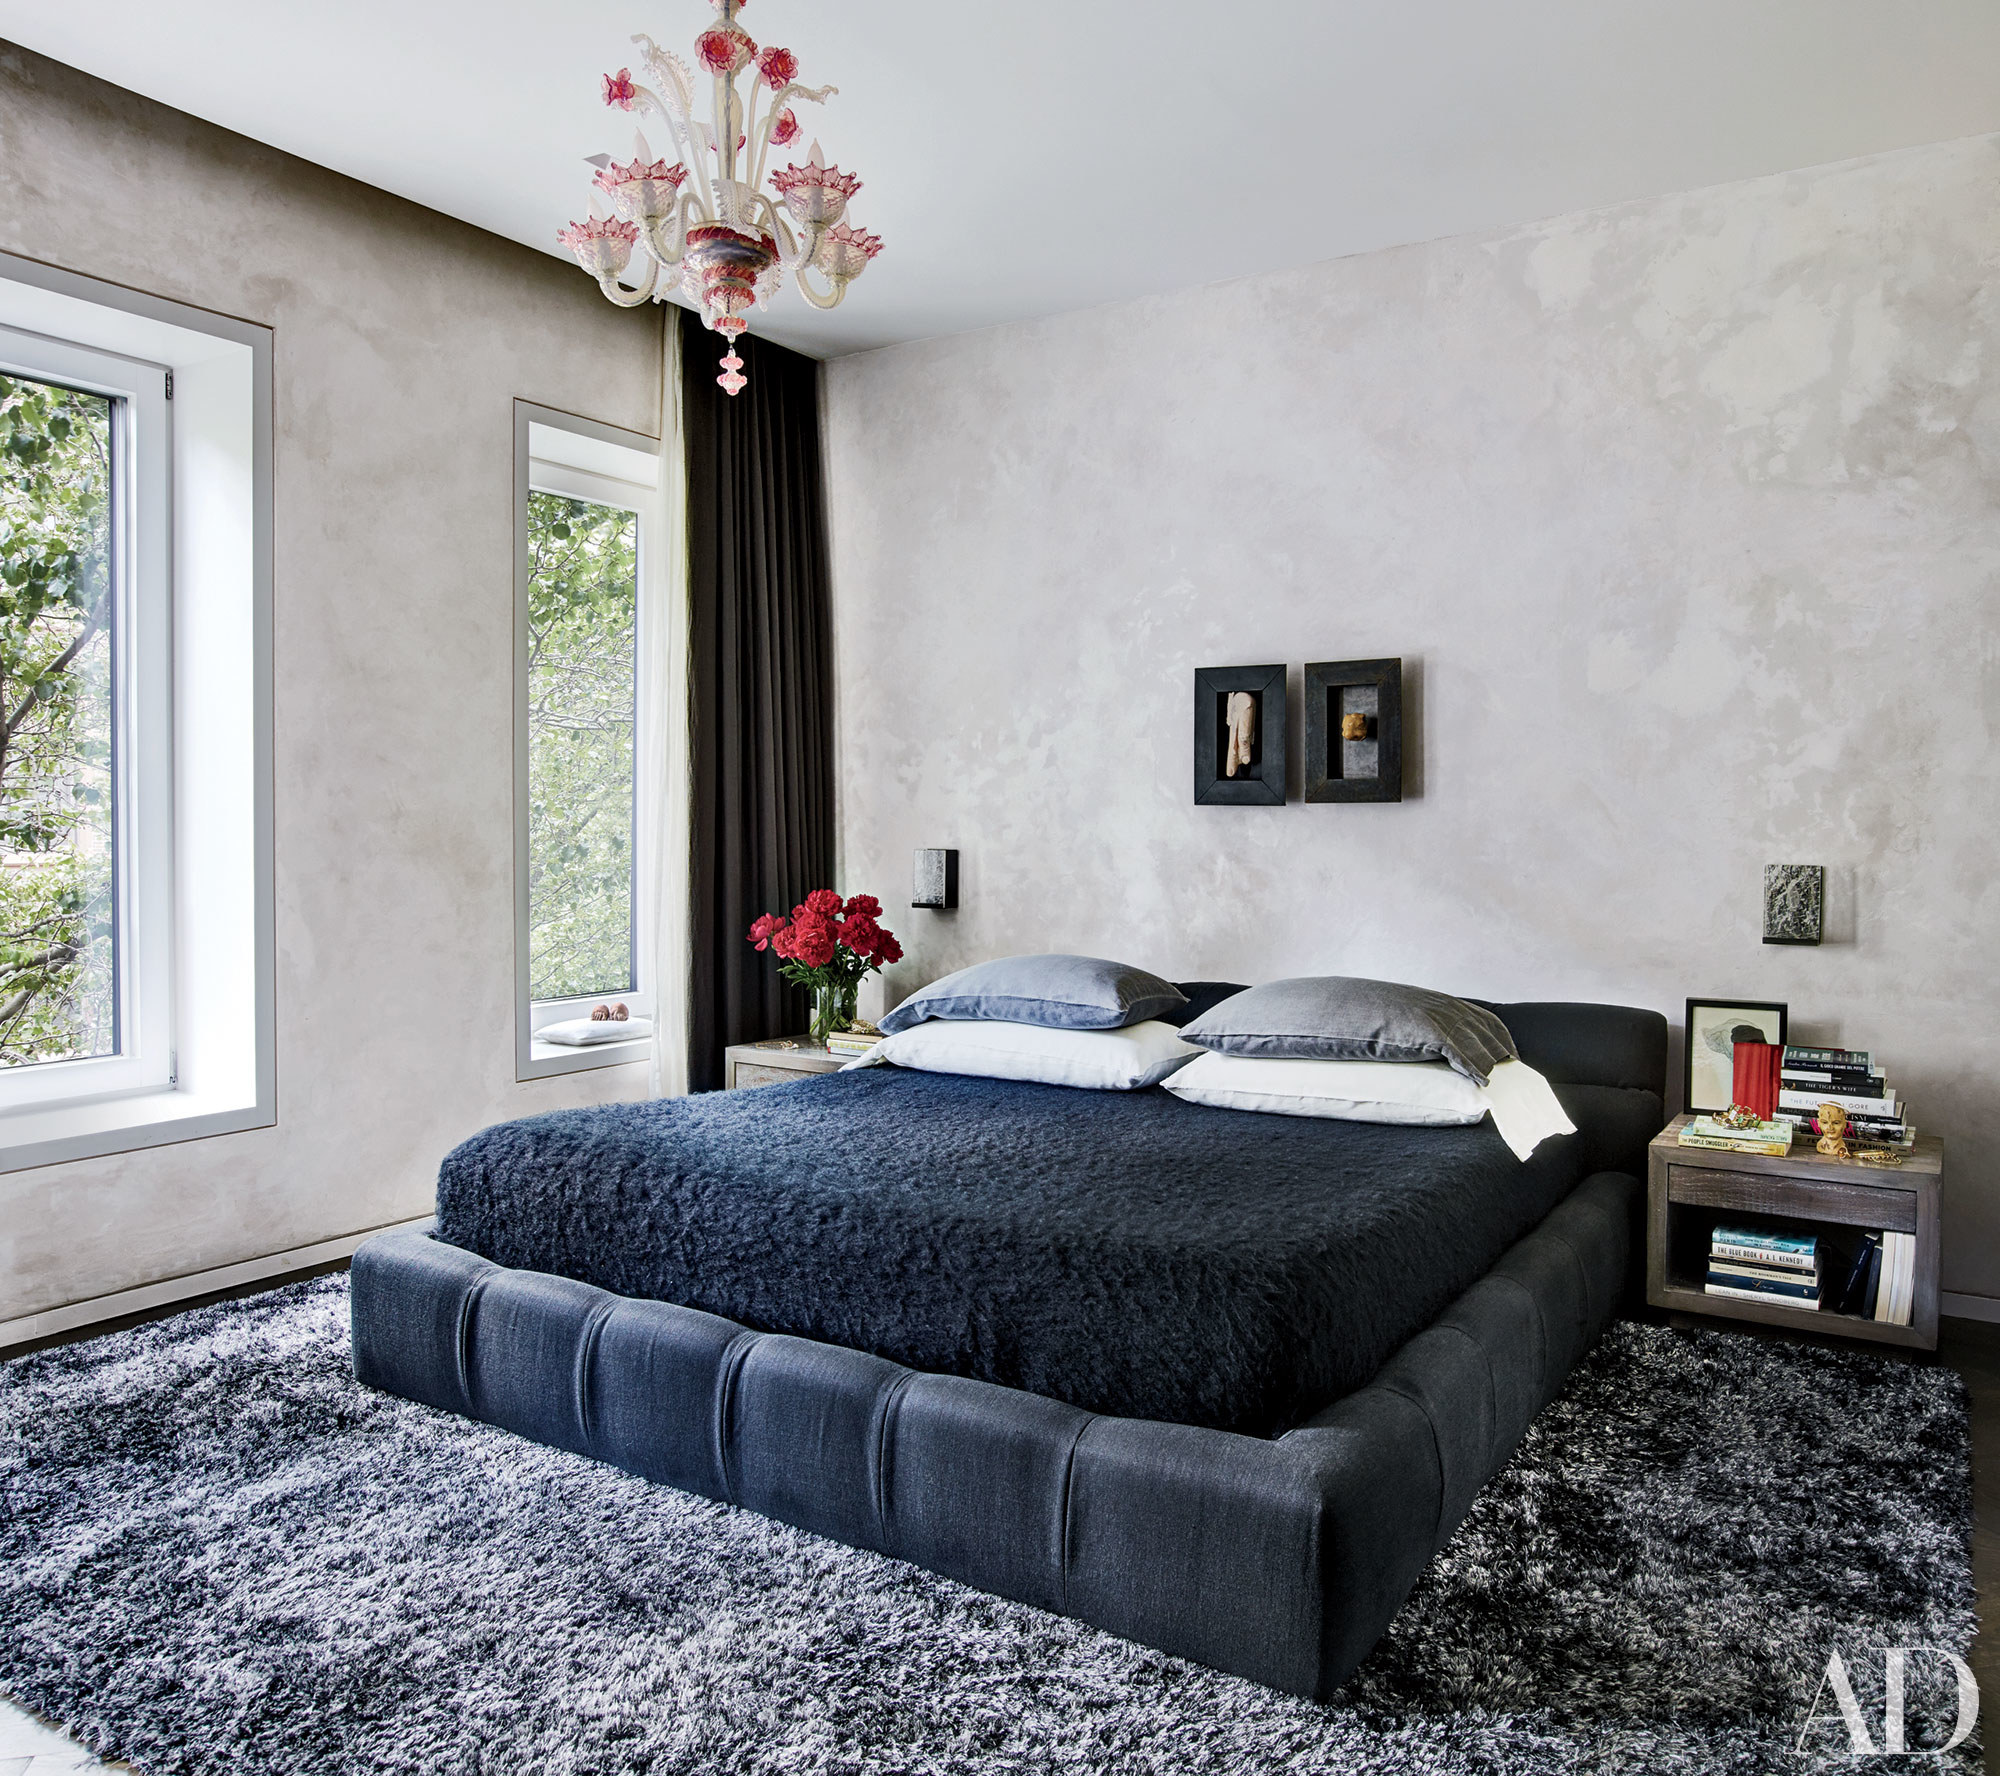 Before And After Pictures Of Bedroom Makeovers Bedroom Ideas Pinterest Diy Boy Lamps For Bedroom Anime Fan Bedroom: Before & After: Beautiful Bedrooms Completely Transformed